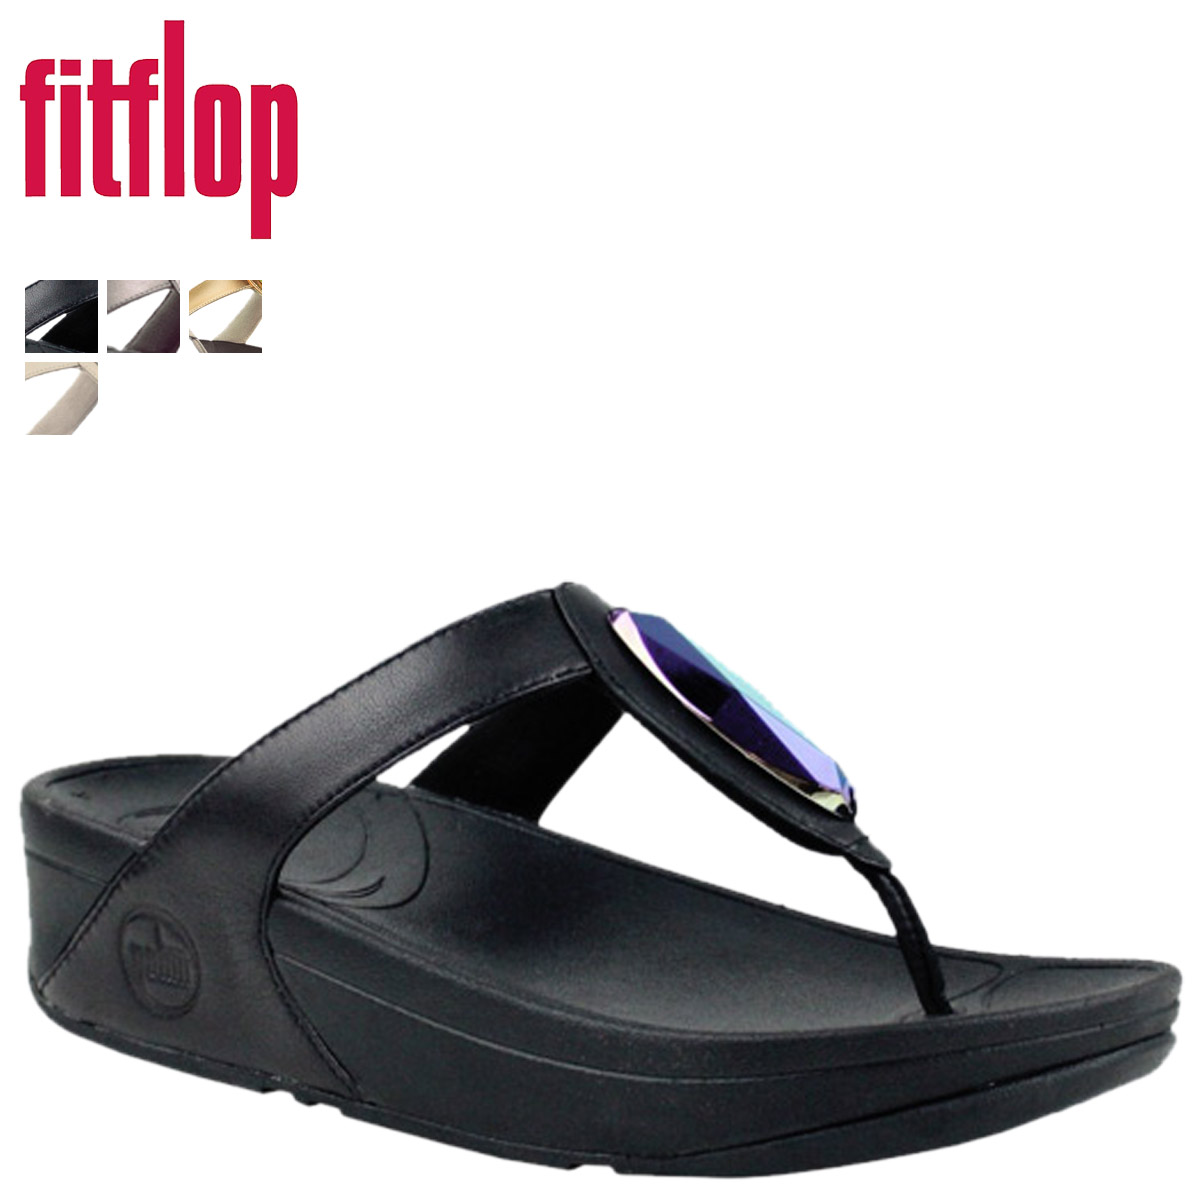 f0f35adf4a46 Sugar Online Shop  Fit flops FitFlop women s LEATHER CHADA chada ...